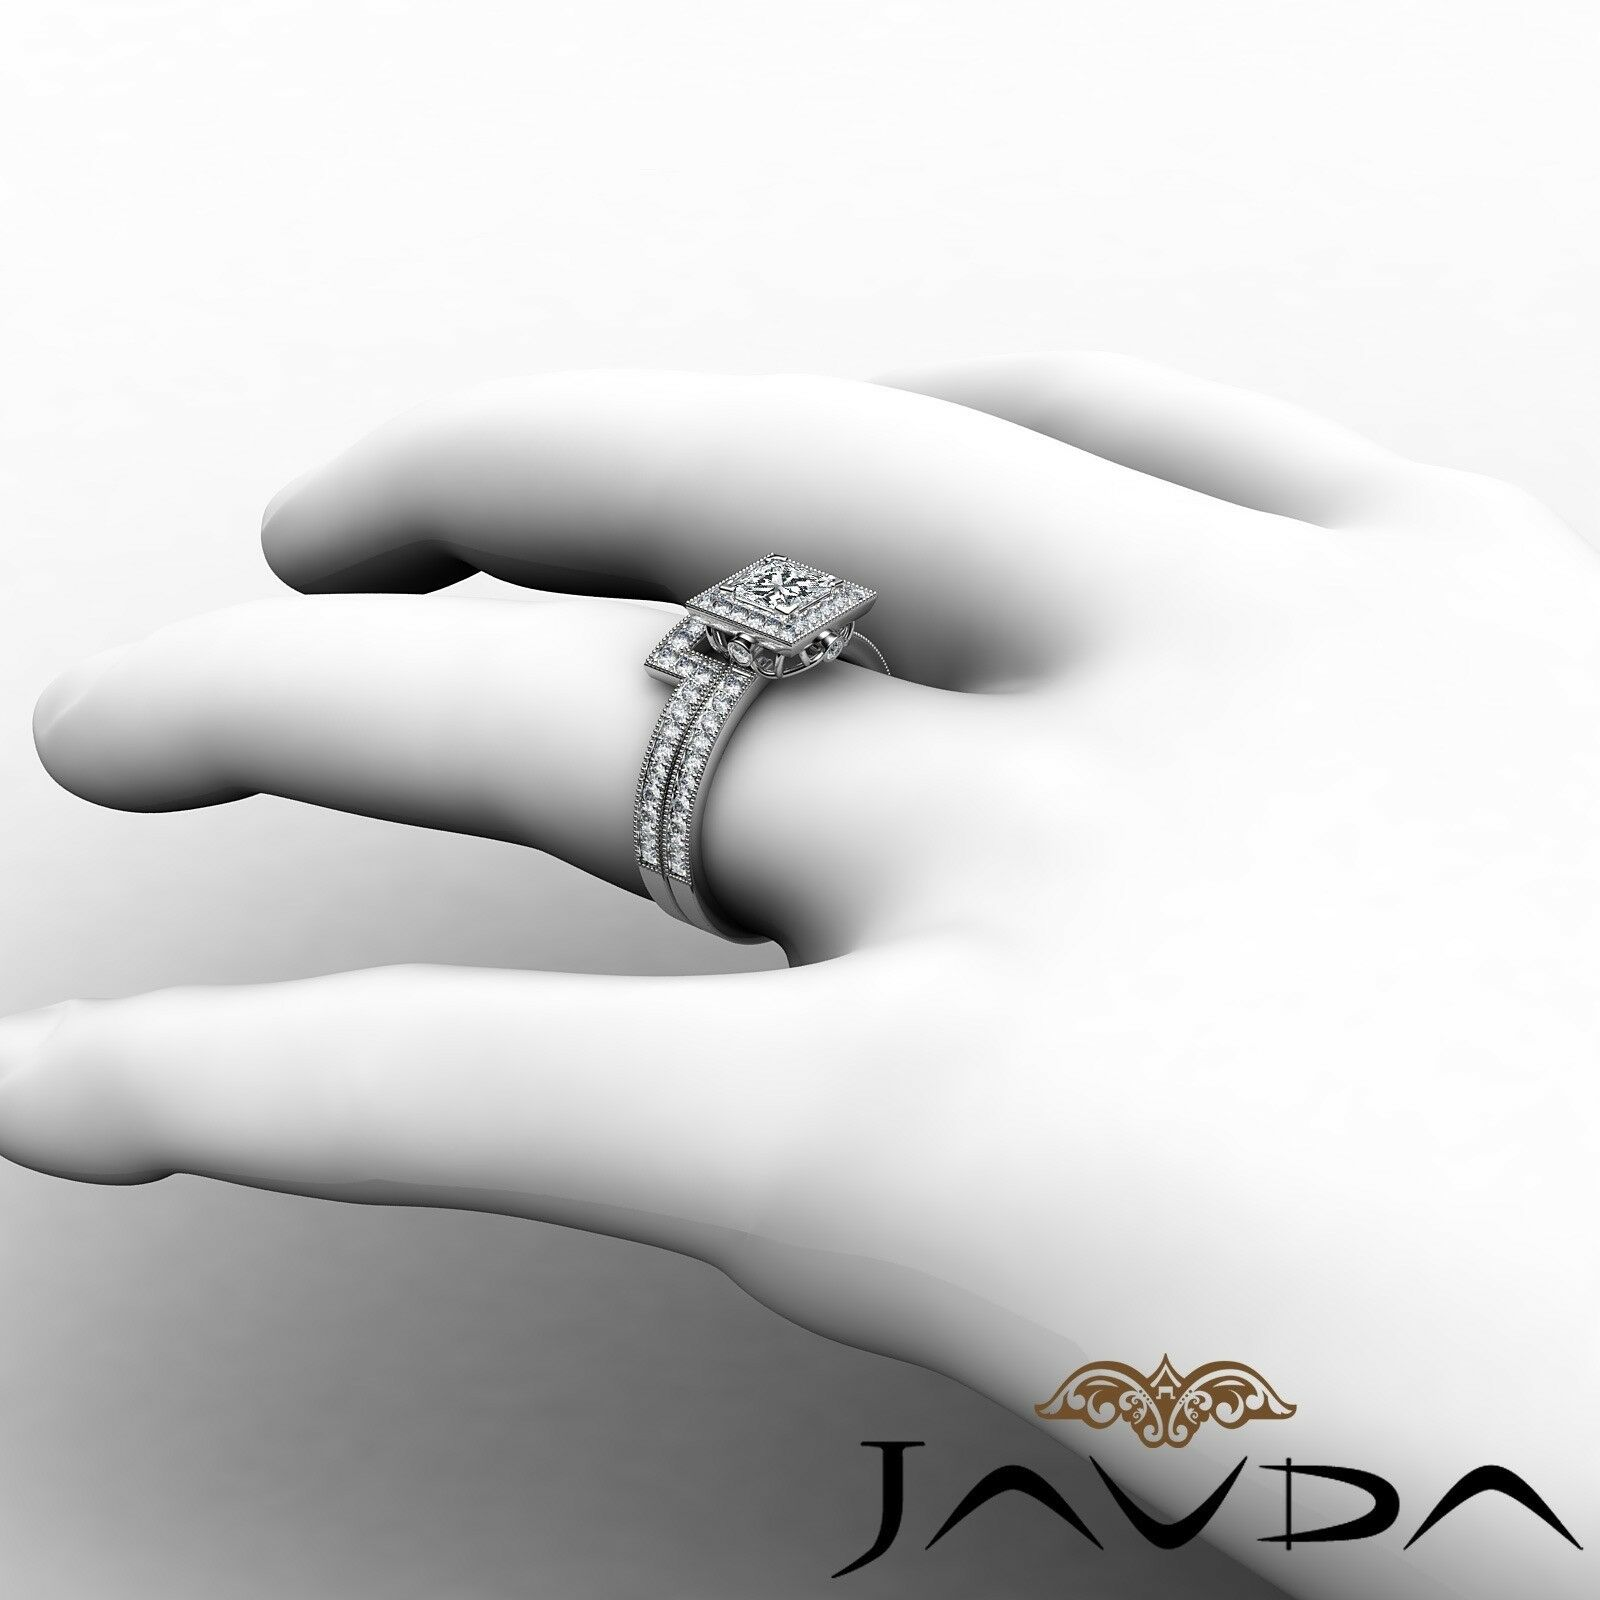 1.9ct Milgrain Edge Bridal Set Princess Diamond Engagement Ring GIA F-VS2 W Gold 5